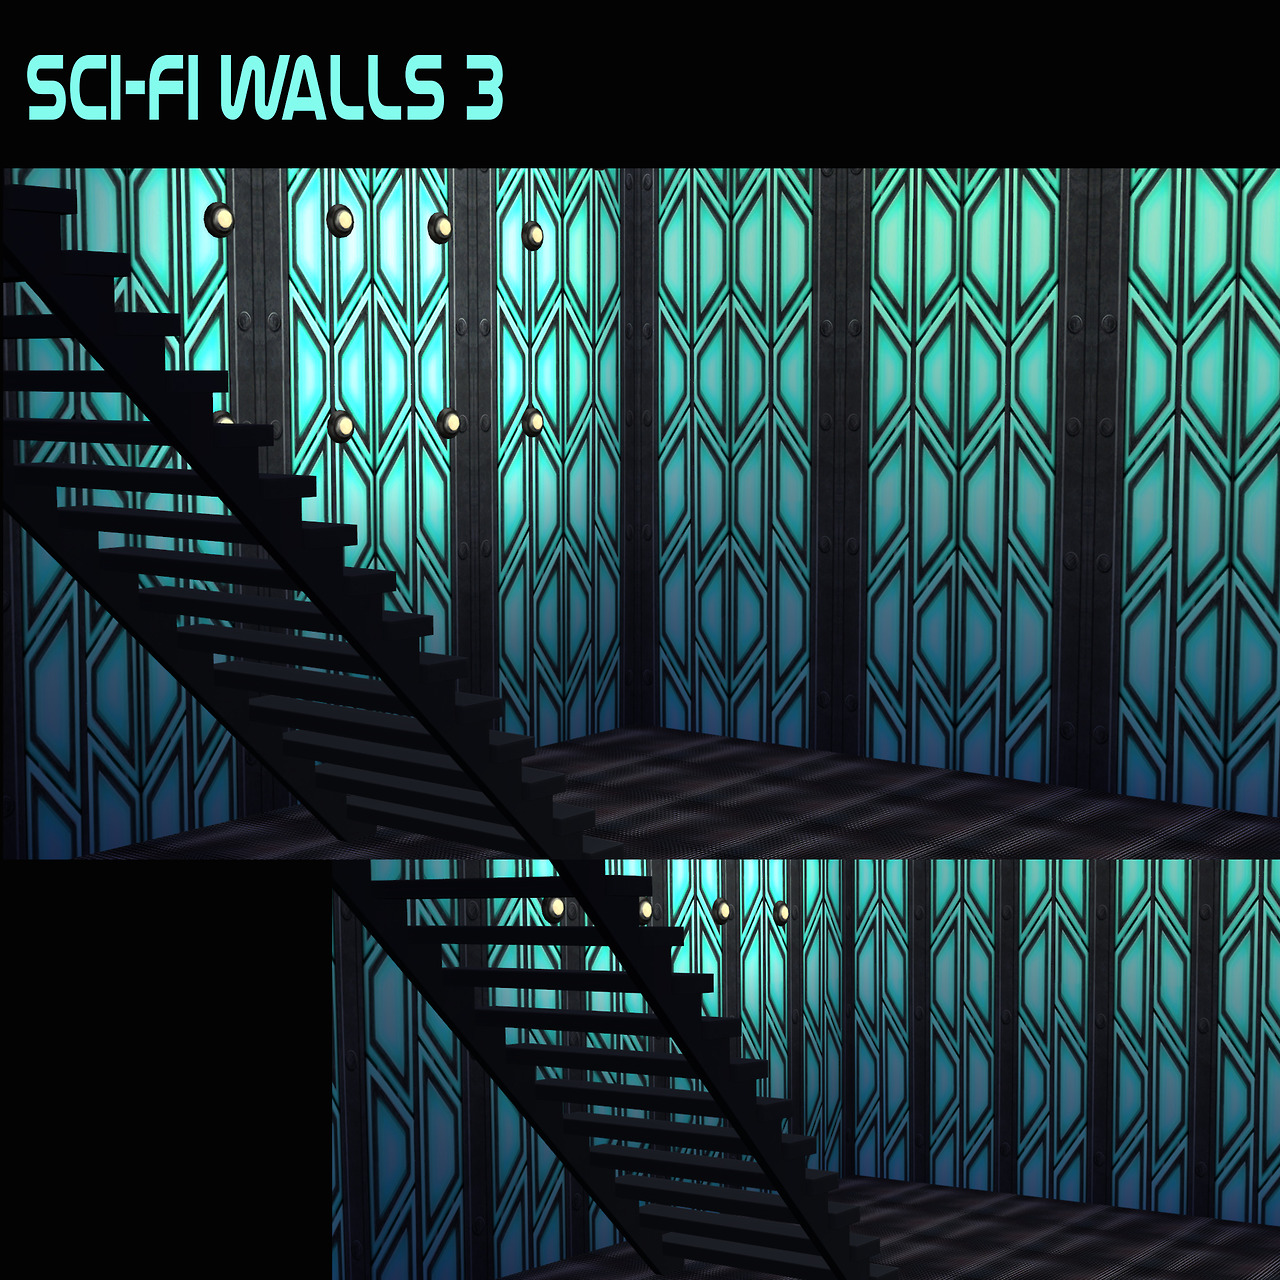 Sci-Fi Walls by BrialImmortelle